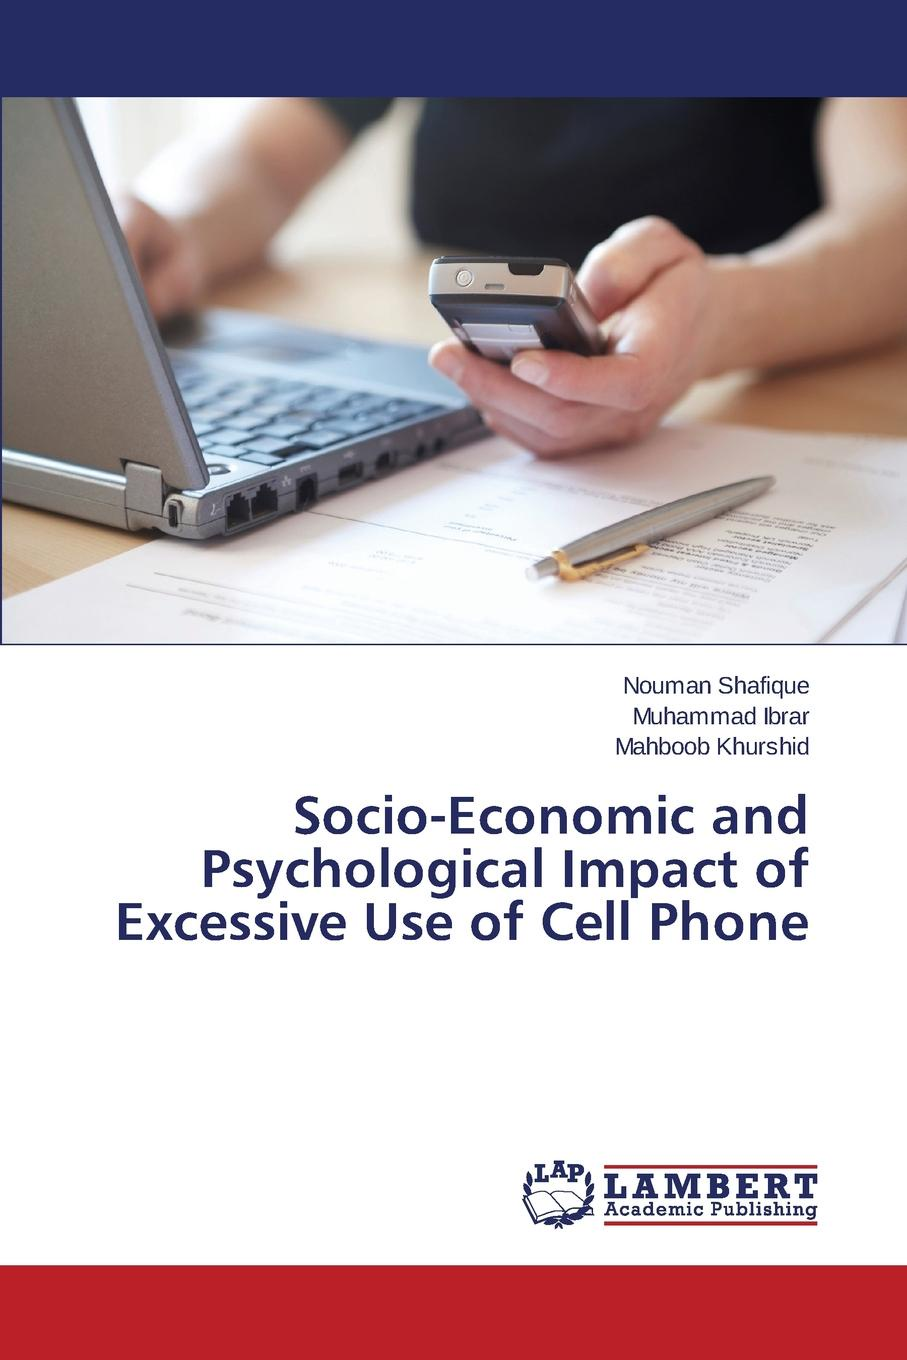 Shafique Nouman, Ibrar Muhammad, Khurshid Mahboob Socio-Economic and Psychological Impact of Excessive Use of Cell Phone ishfaq ahmed and tehmina fiaz qazi mobile phone adoption a habit or necessity